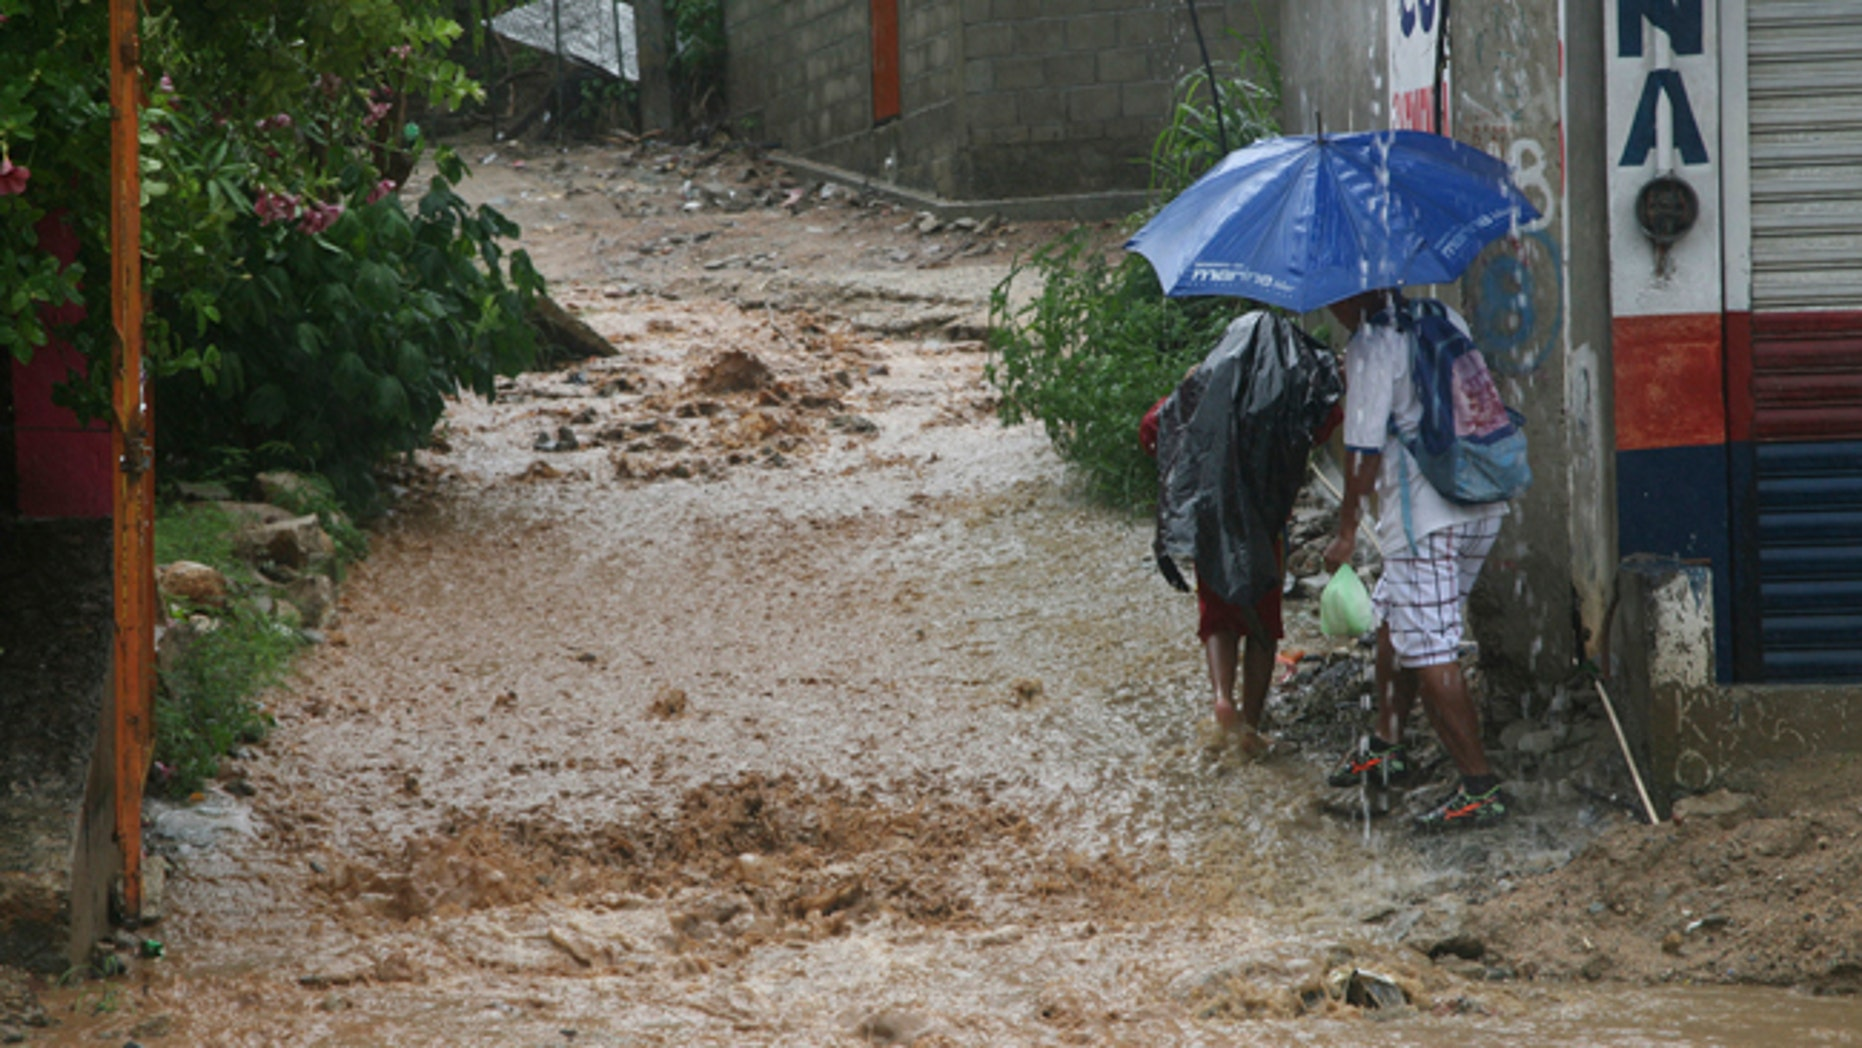 People walk under a downpour on a flooded street in Acapulco, Mexico, Thursday, Sept. 14, 2017.